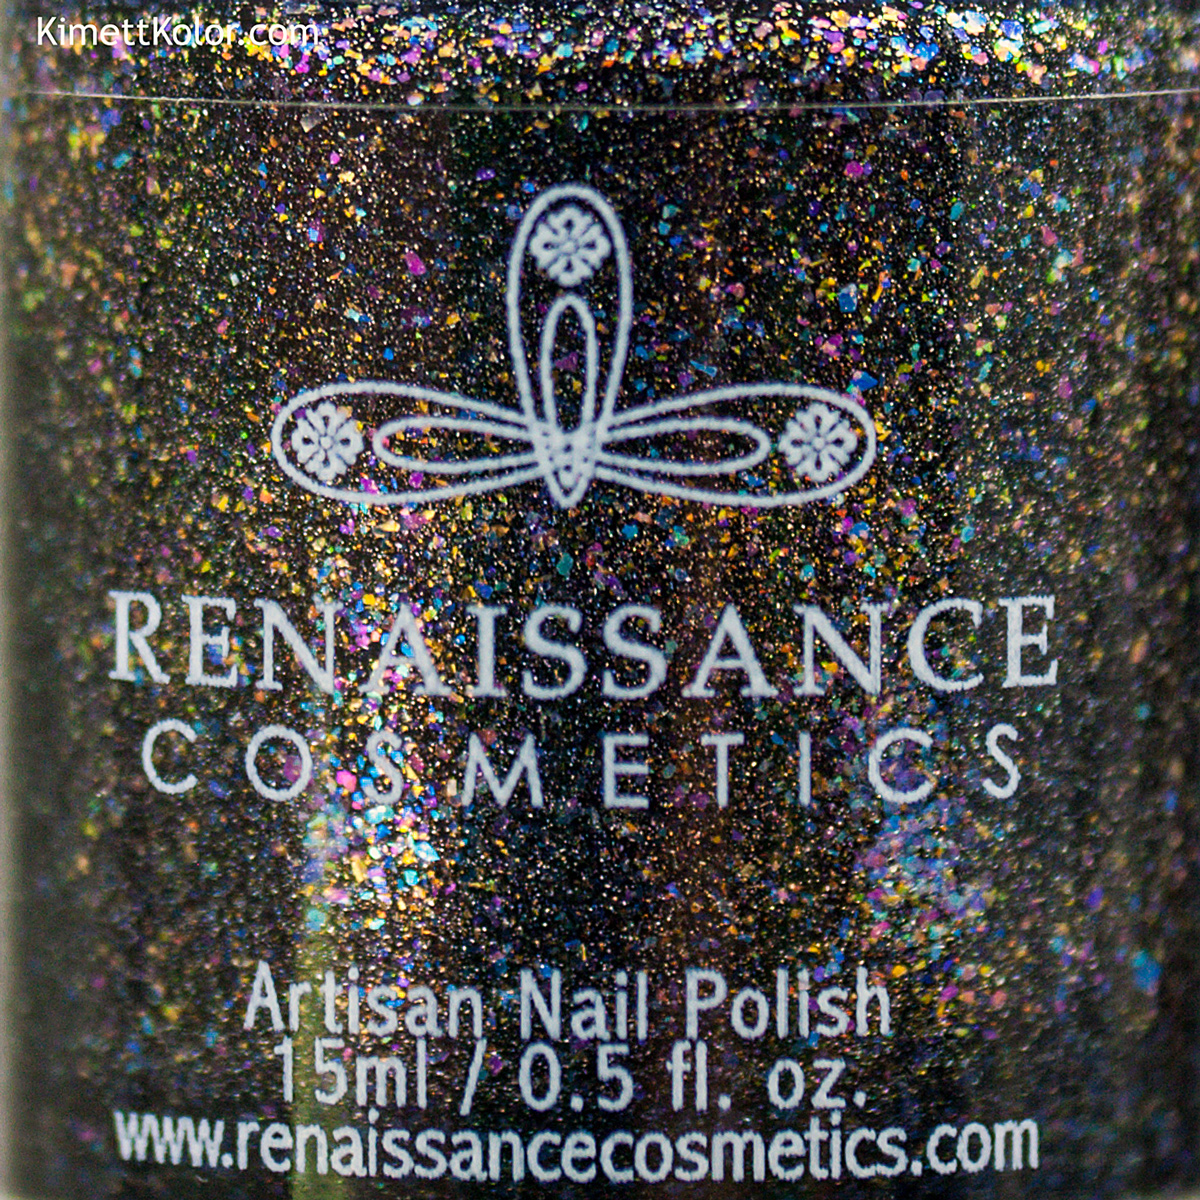 Kimett Kolor Polish Swatch Out of the Darkness Renaissance Cosmetics